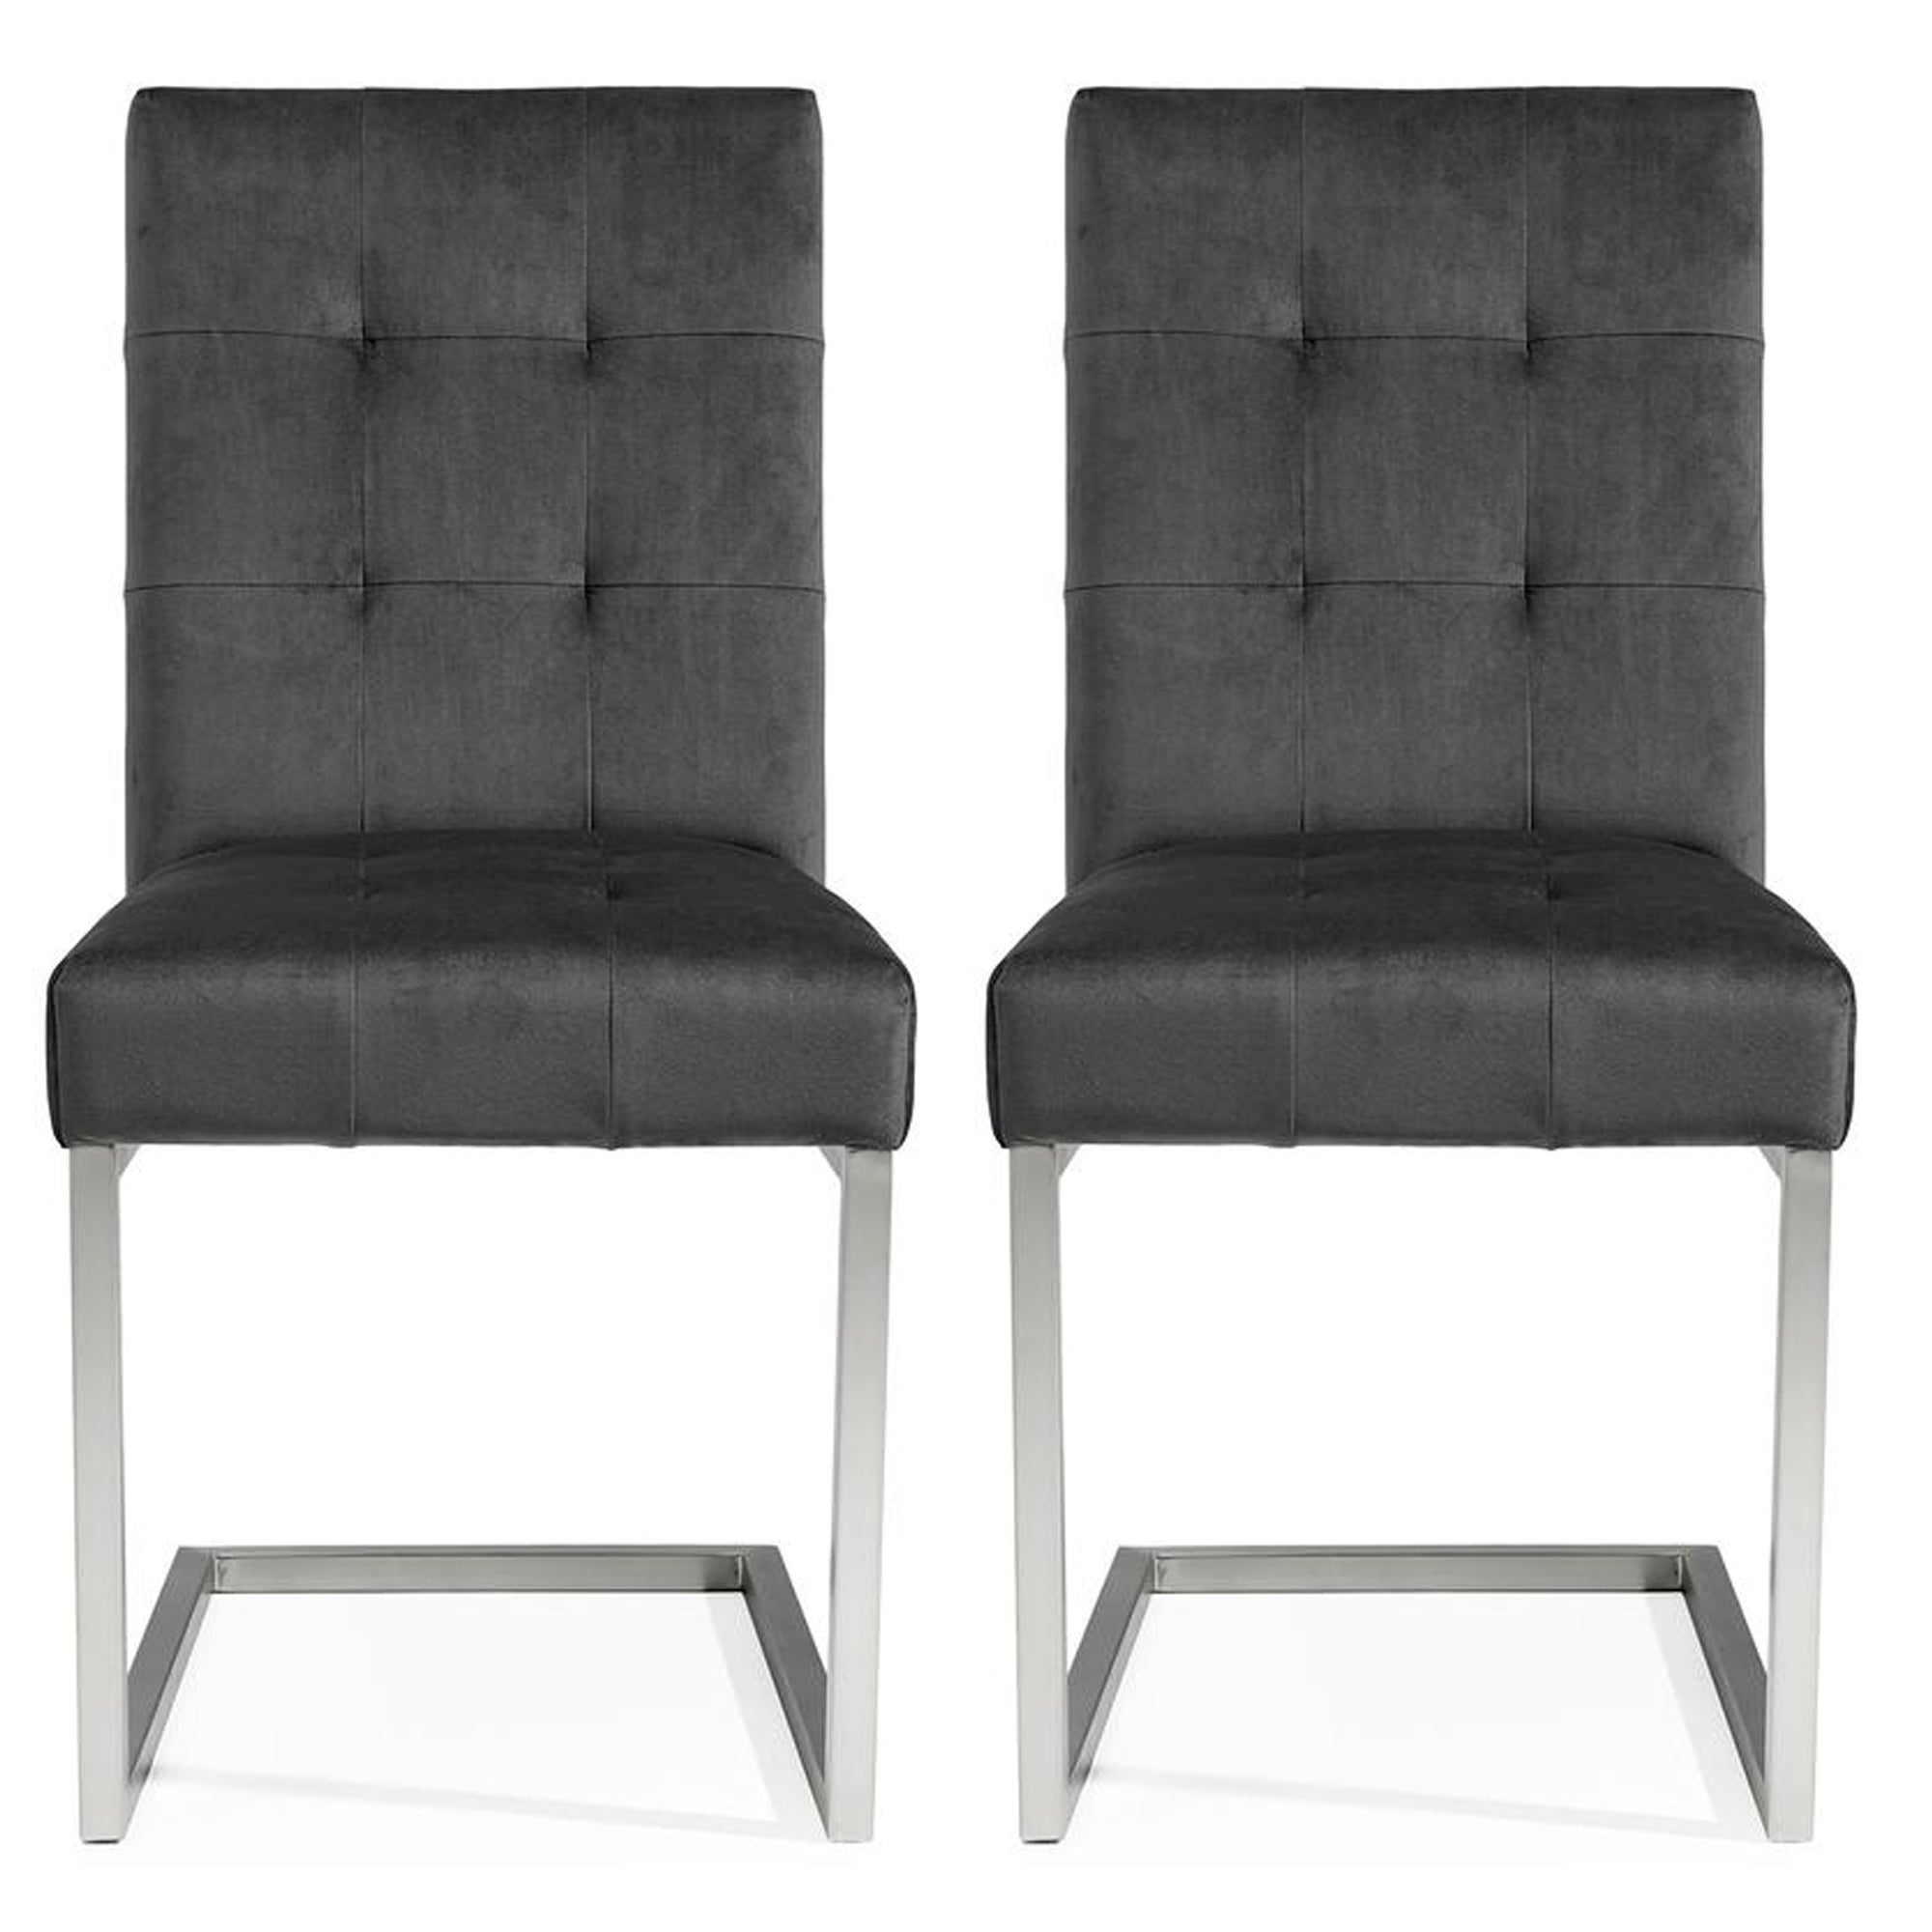 Toulouse Upholstered Cantilever Chair Gun Metal (Pair)